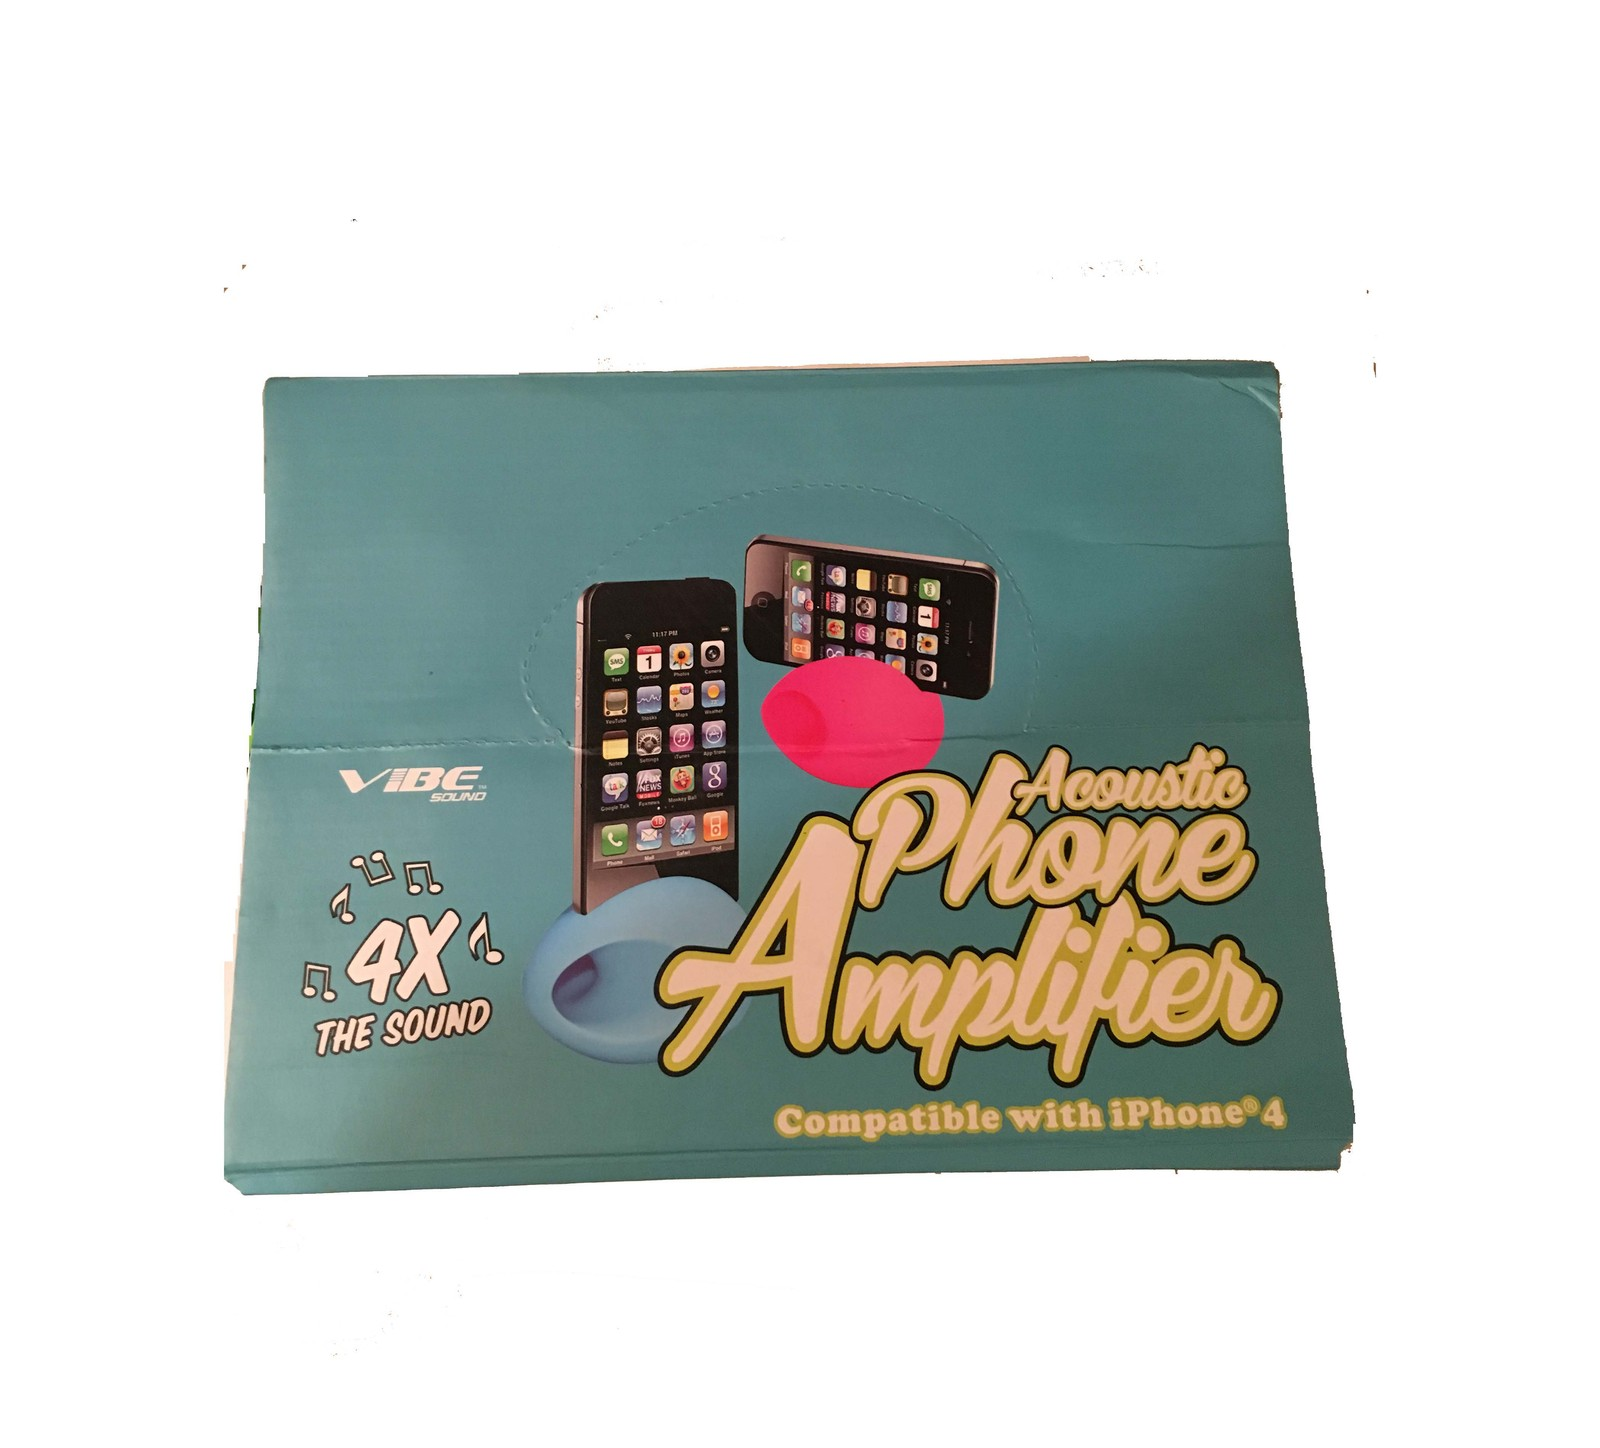 Cell phone voice amplifier  display box